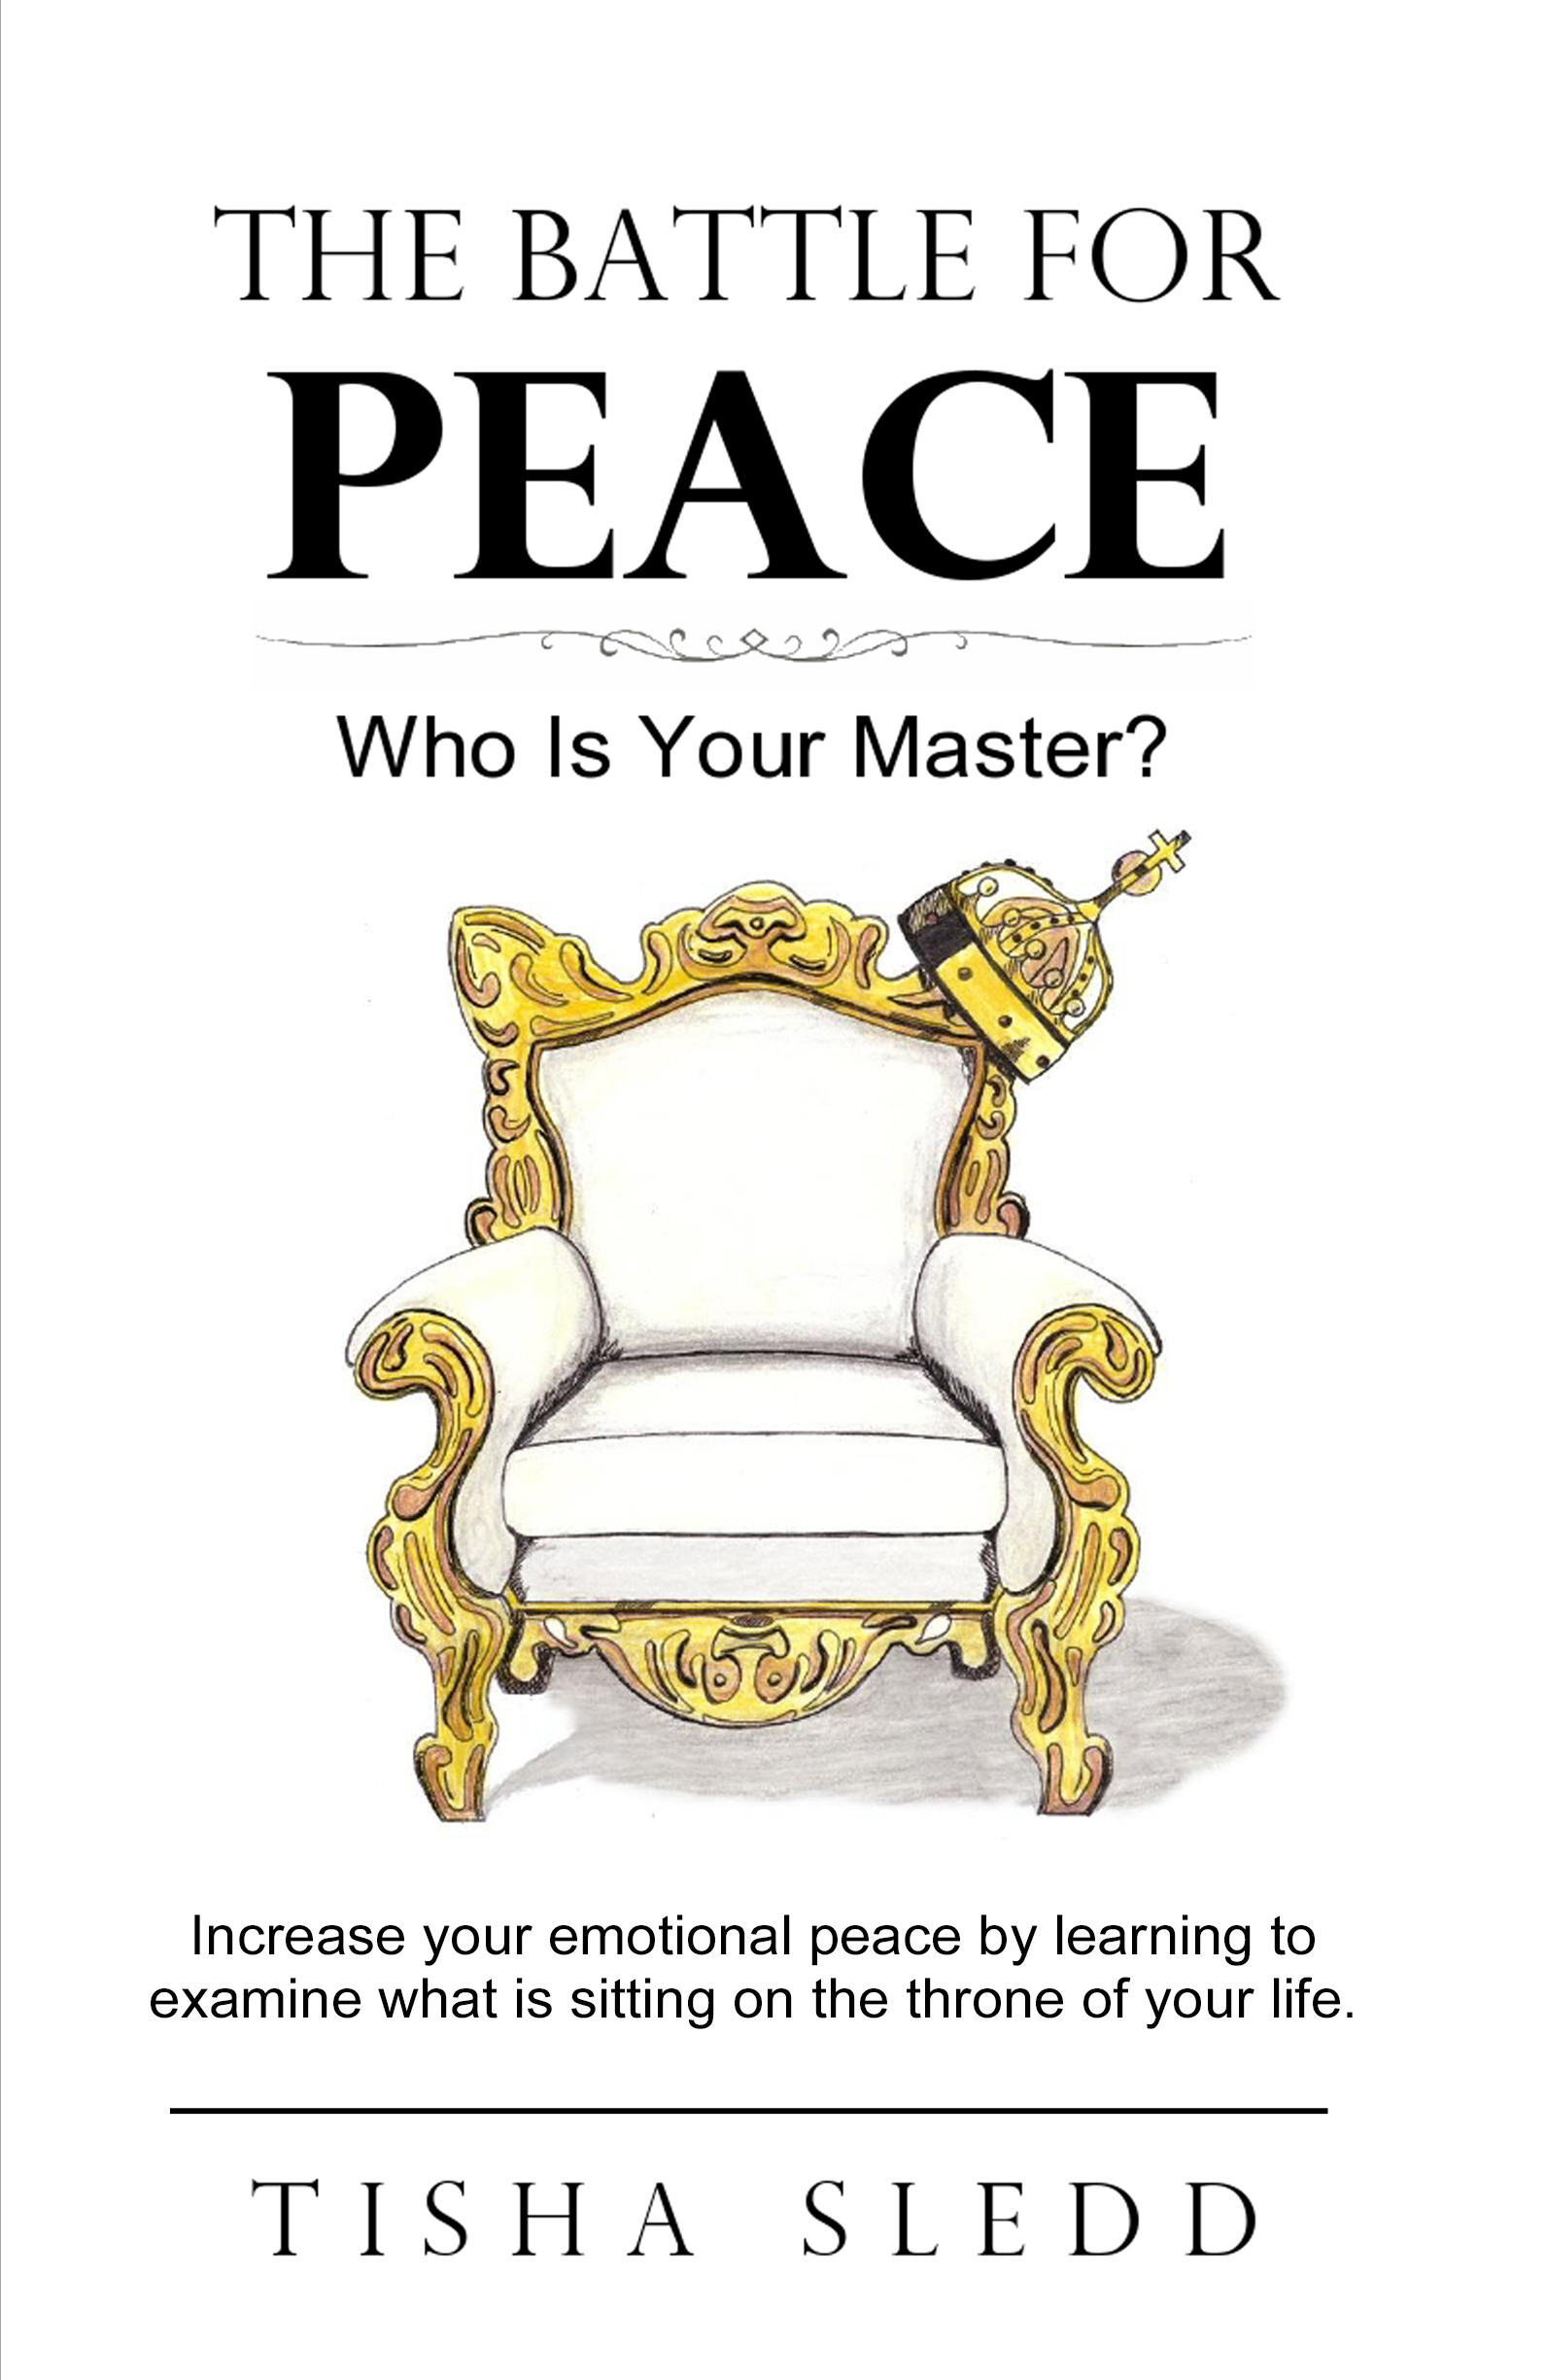 The Battle for Peace - byTisha Sledd Increase your emotional peace by learning to examine what is sitting on the throne of your life. My book